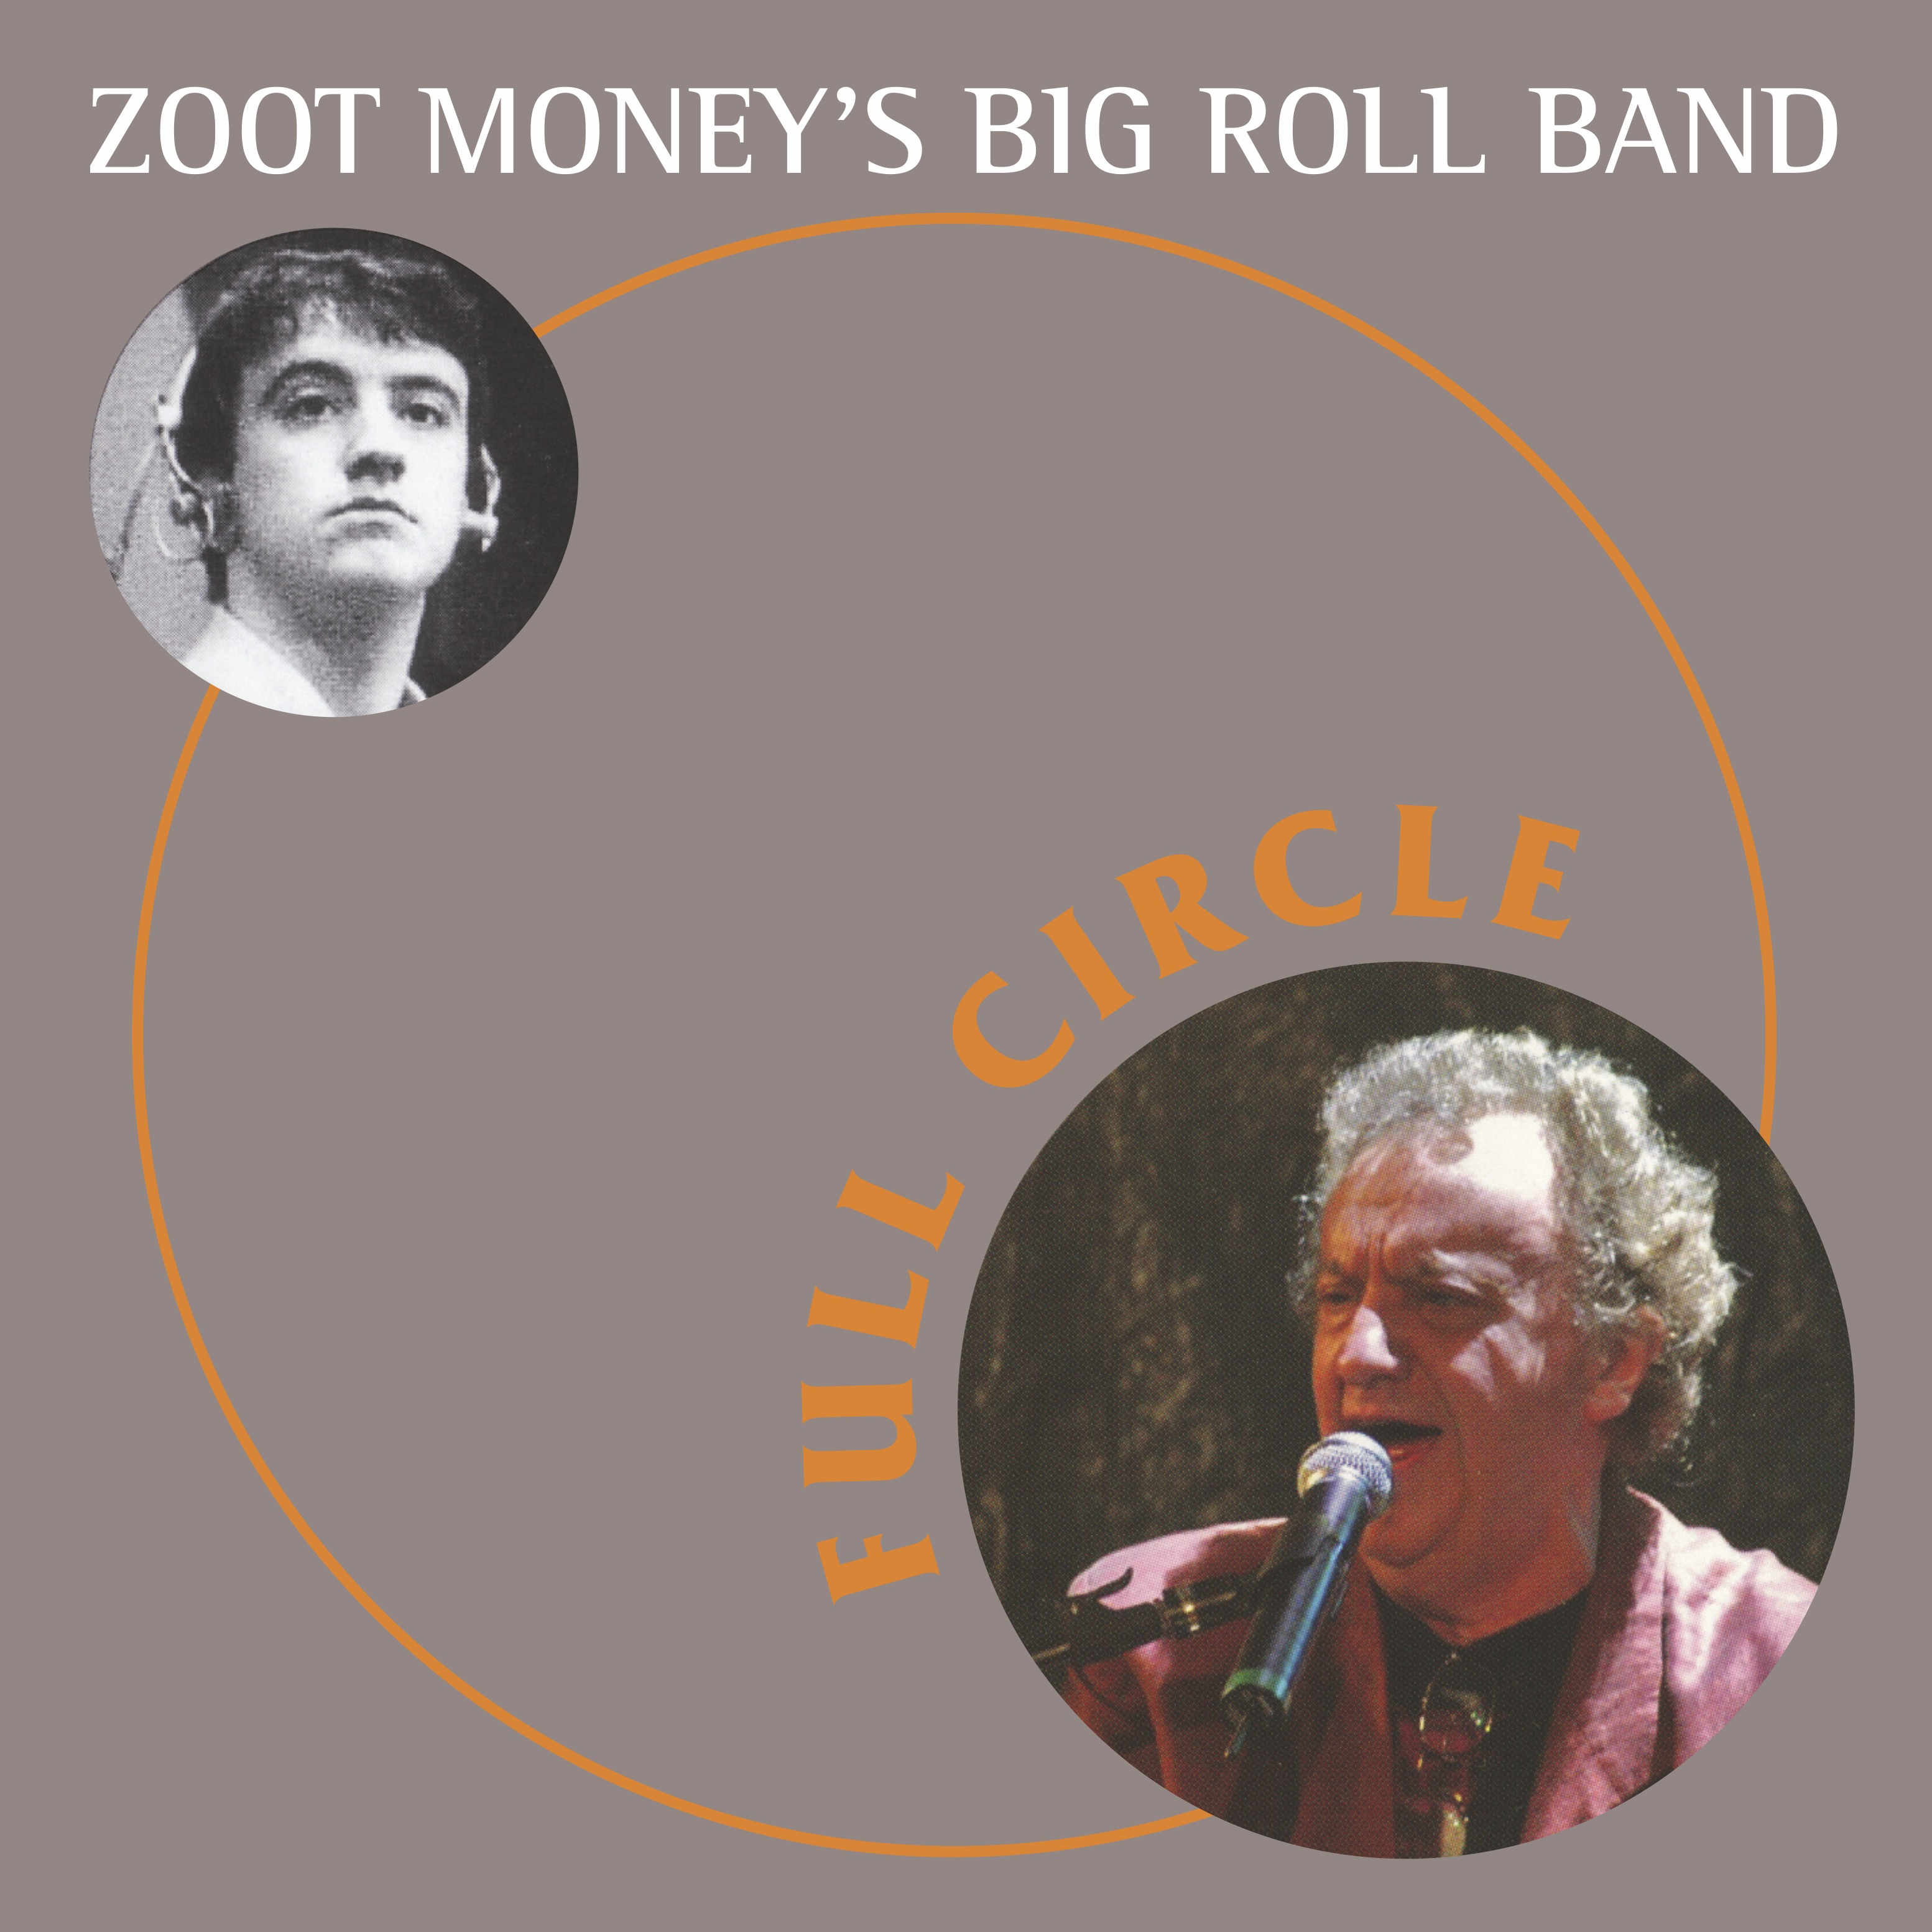 Zoot Money's Big Roll Band - Full Circle - Repertoire Records